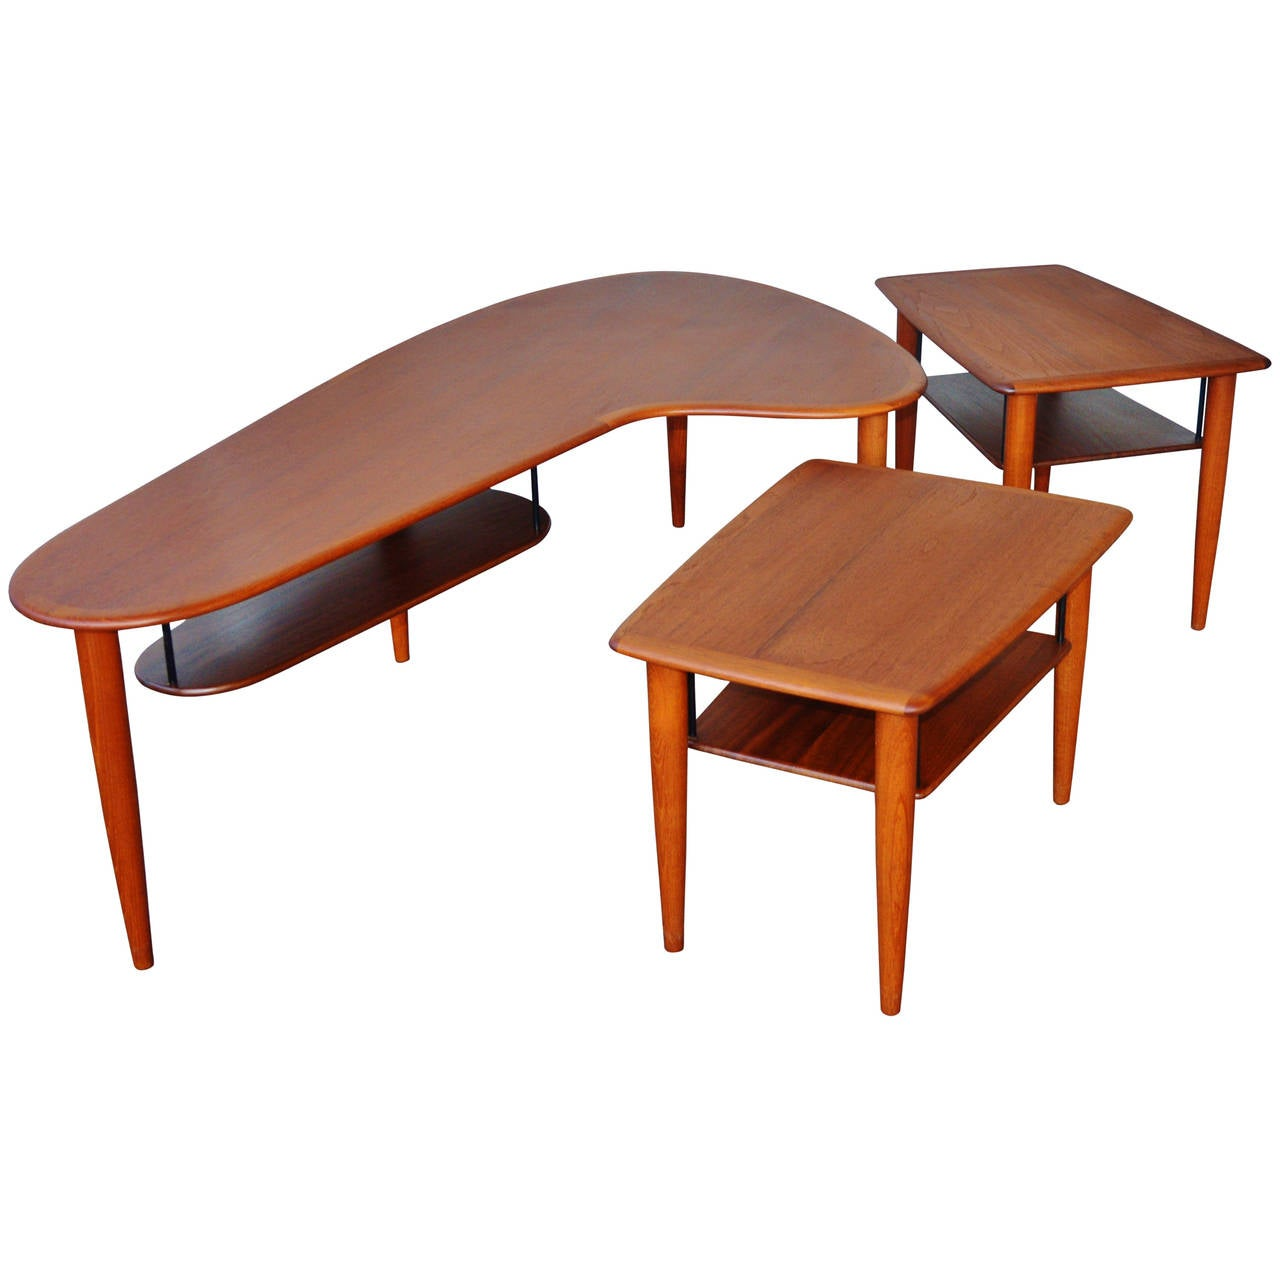 Teak Boomerang Coffee Table And Matching Pair Of Side Tables At 1stdibs